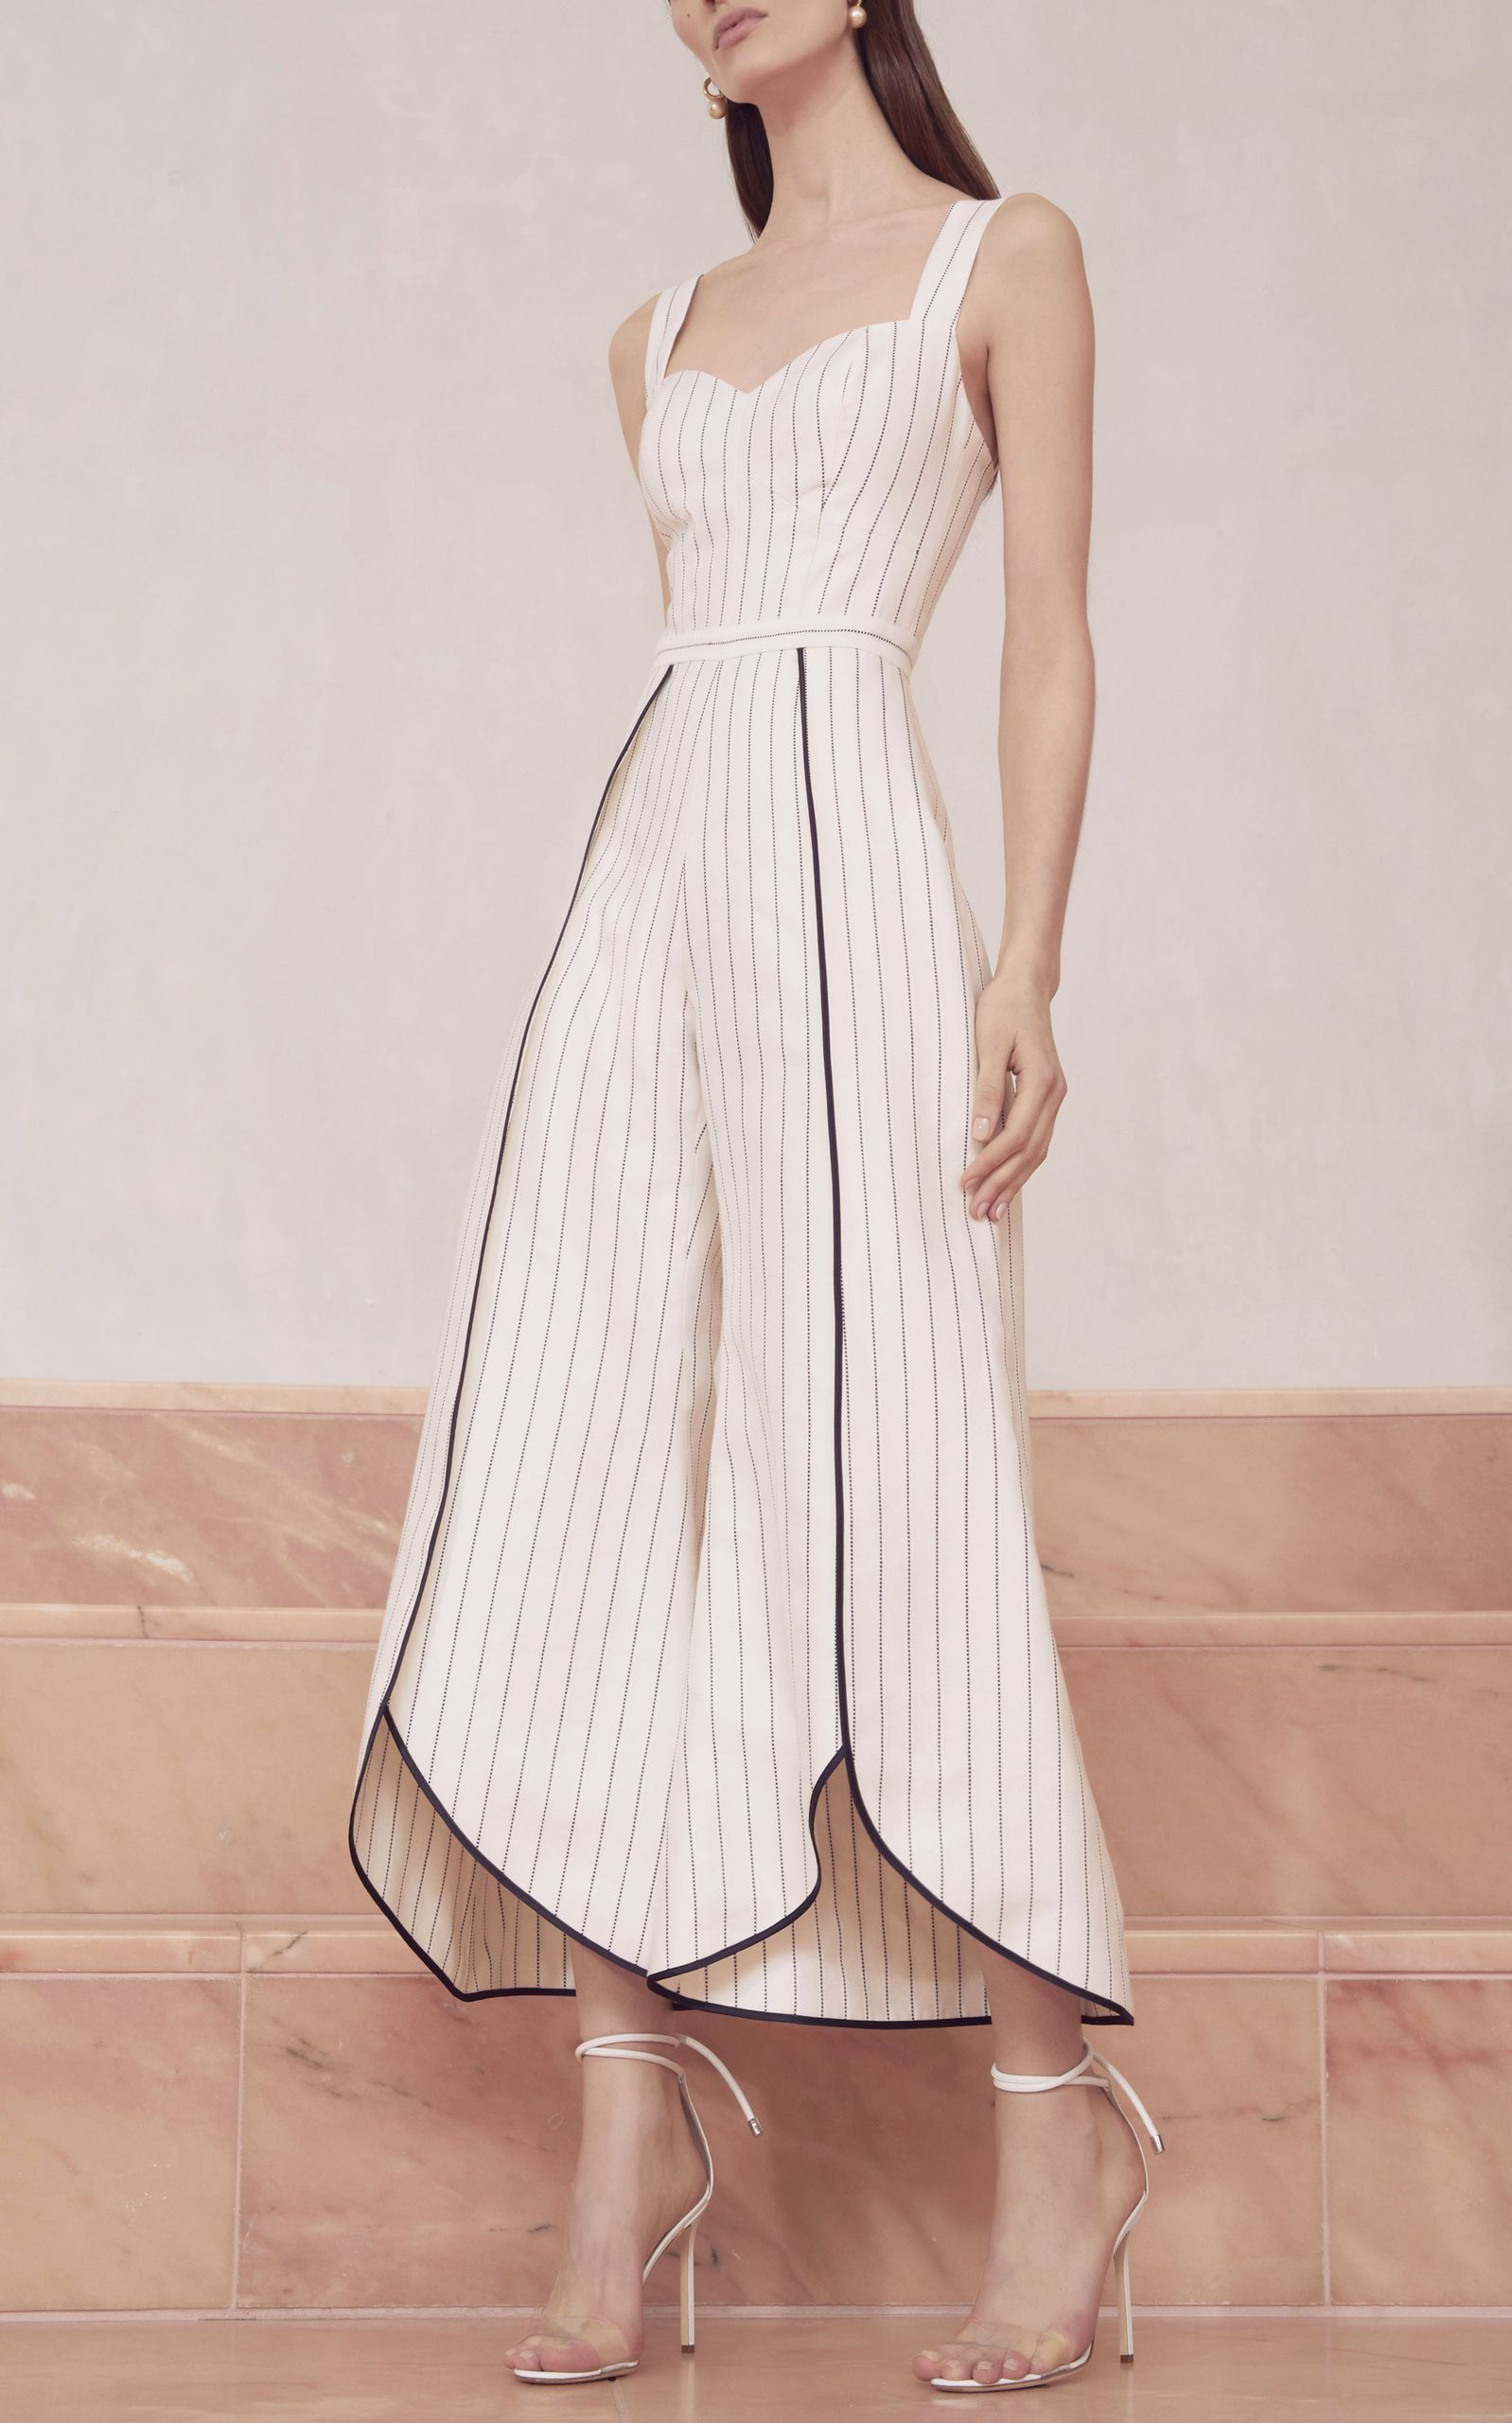 ca1b2dfc0e This Alexis Edaline Cropped Jumpsuit features a sweetheart neckline